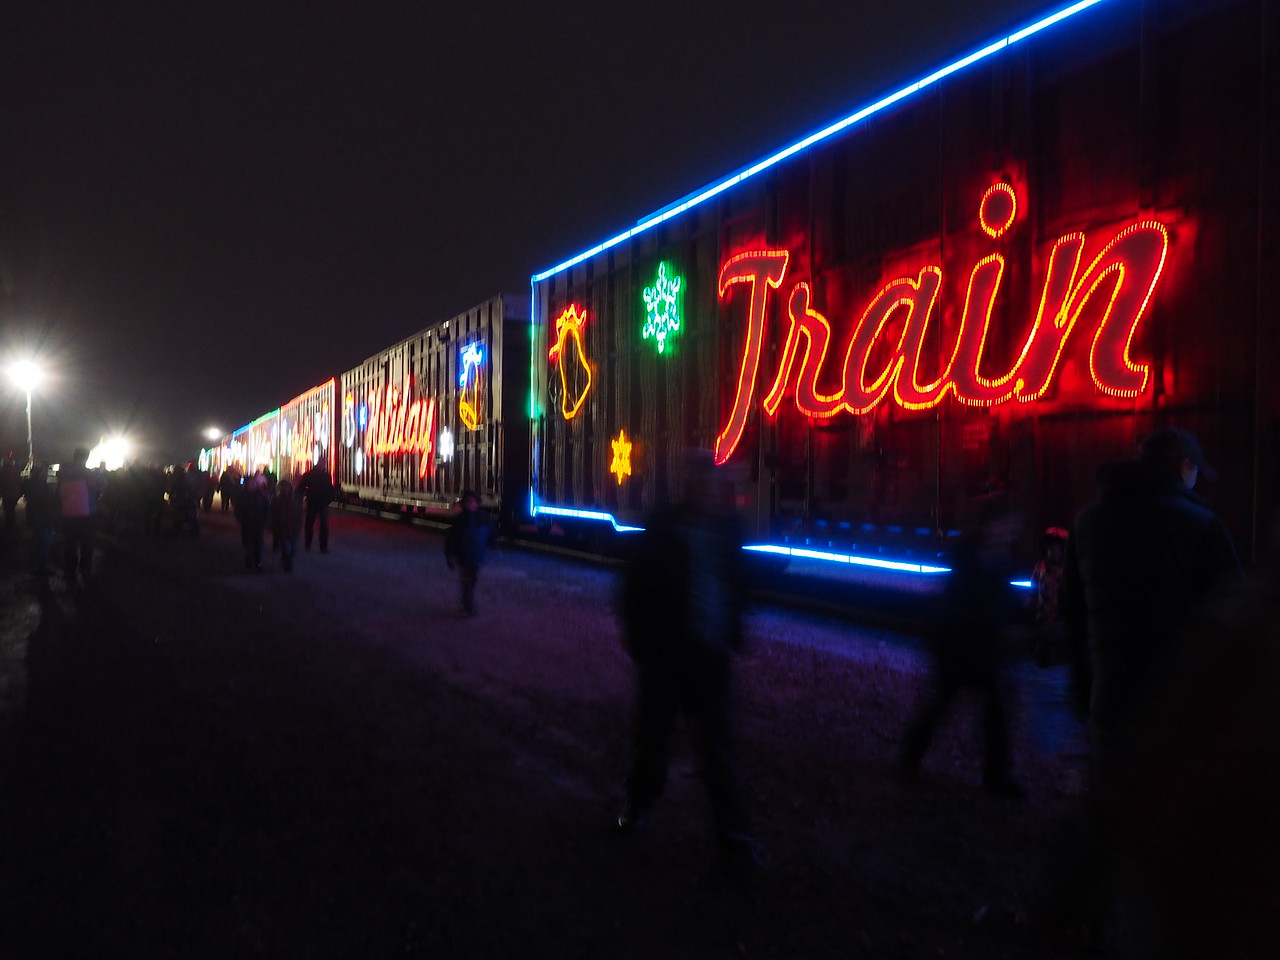 TRAIN AT NIGHTTIME